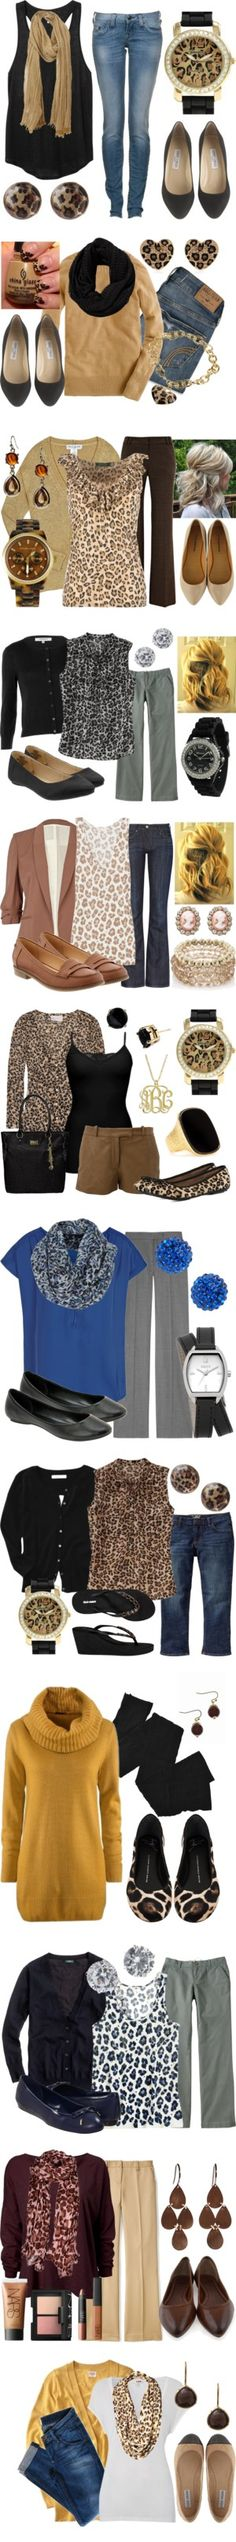 """Leopard Print Love"" Smith Lamb Look! It's our Cheetah Girls outfits ; Dress Outfits, Casual Outfits, Cute Outfits, Fashion Outfits, Classy Outfits, Work Outfits, Fall Winter Outfits, Autumn Winter Fashion, Looks Style"